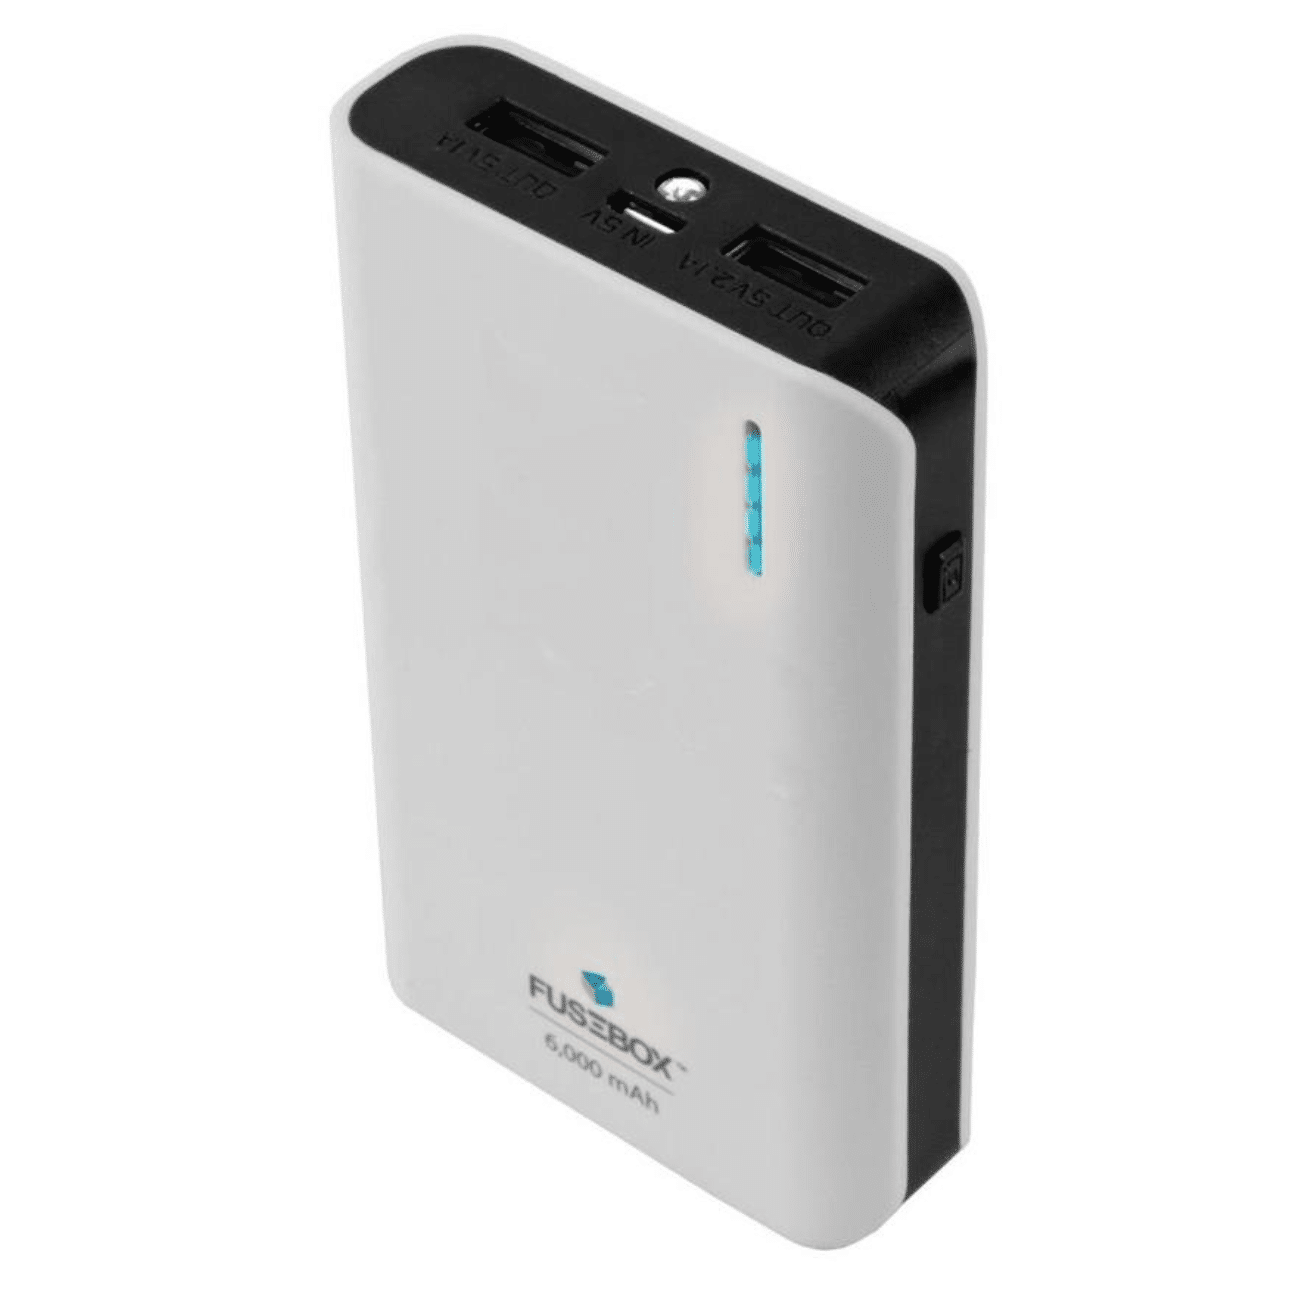 Camping Gift Ideas, Portable Power Bank, Portable Battery, Portable phone charger